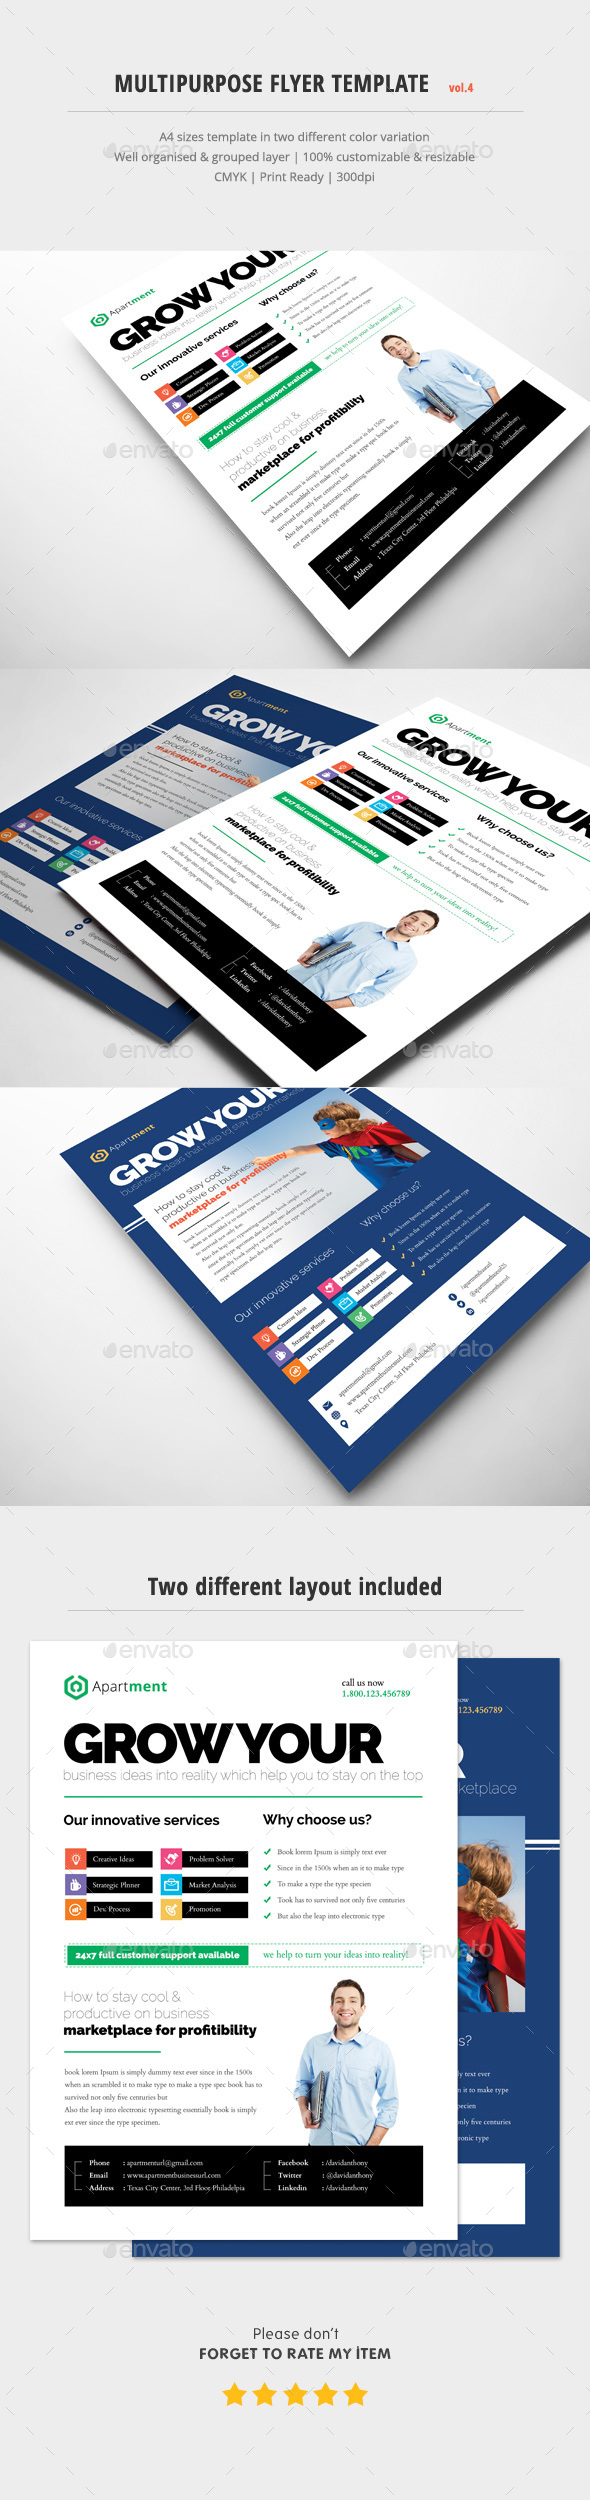 Multipurpose Flyer Ads Vol.4 - Corporate Flyers